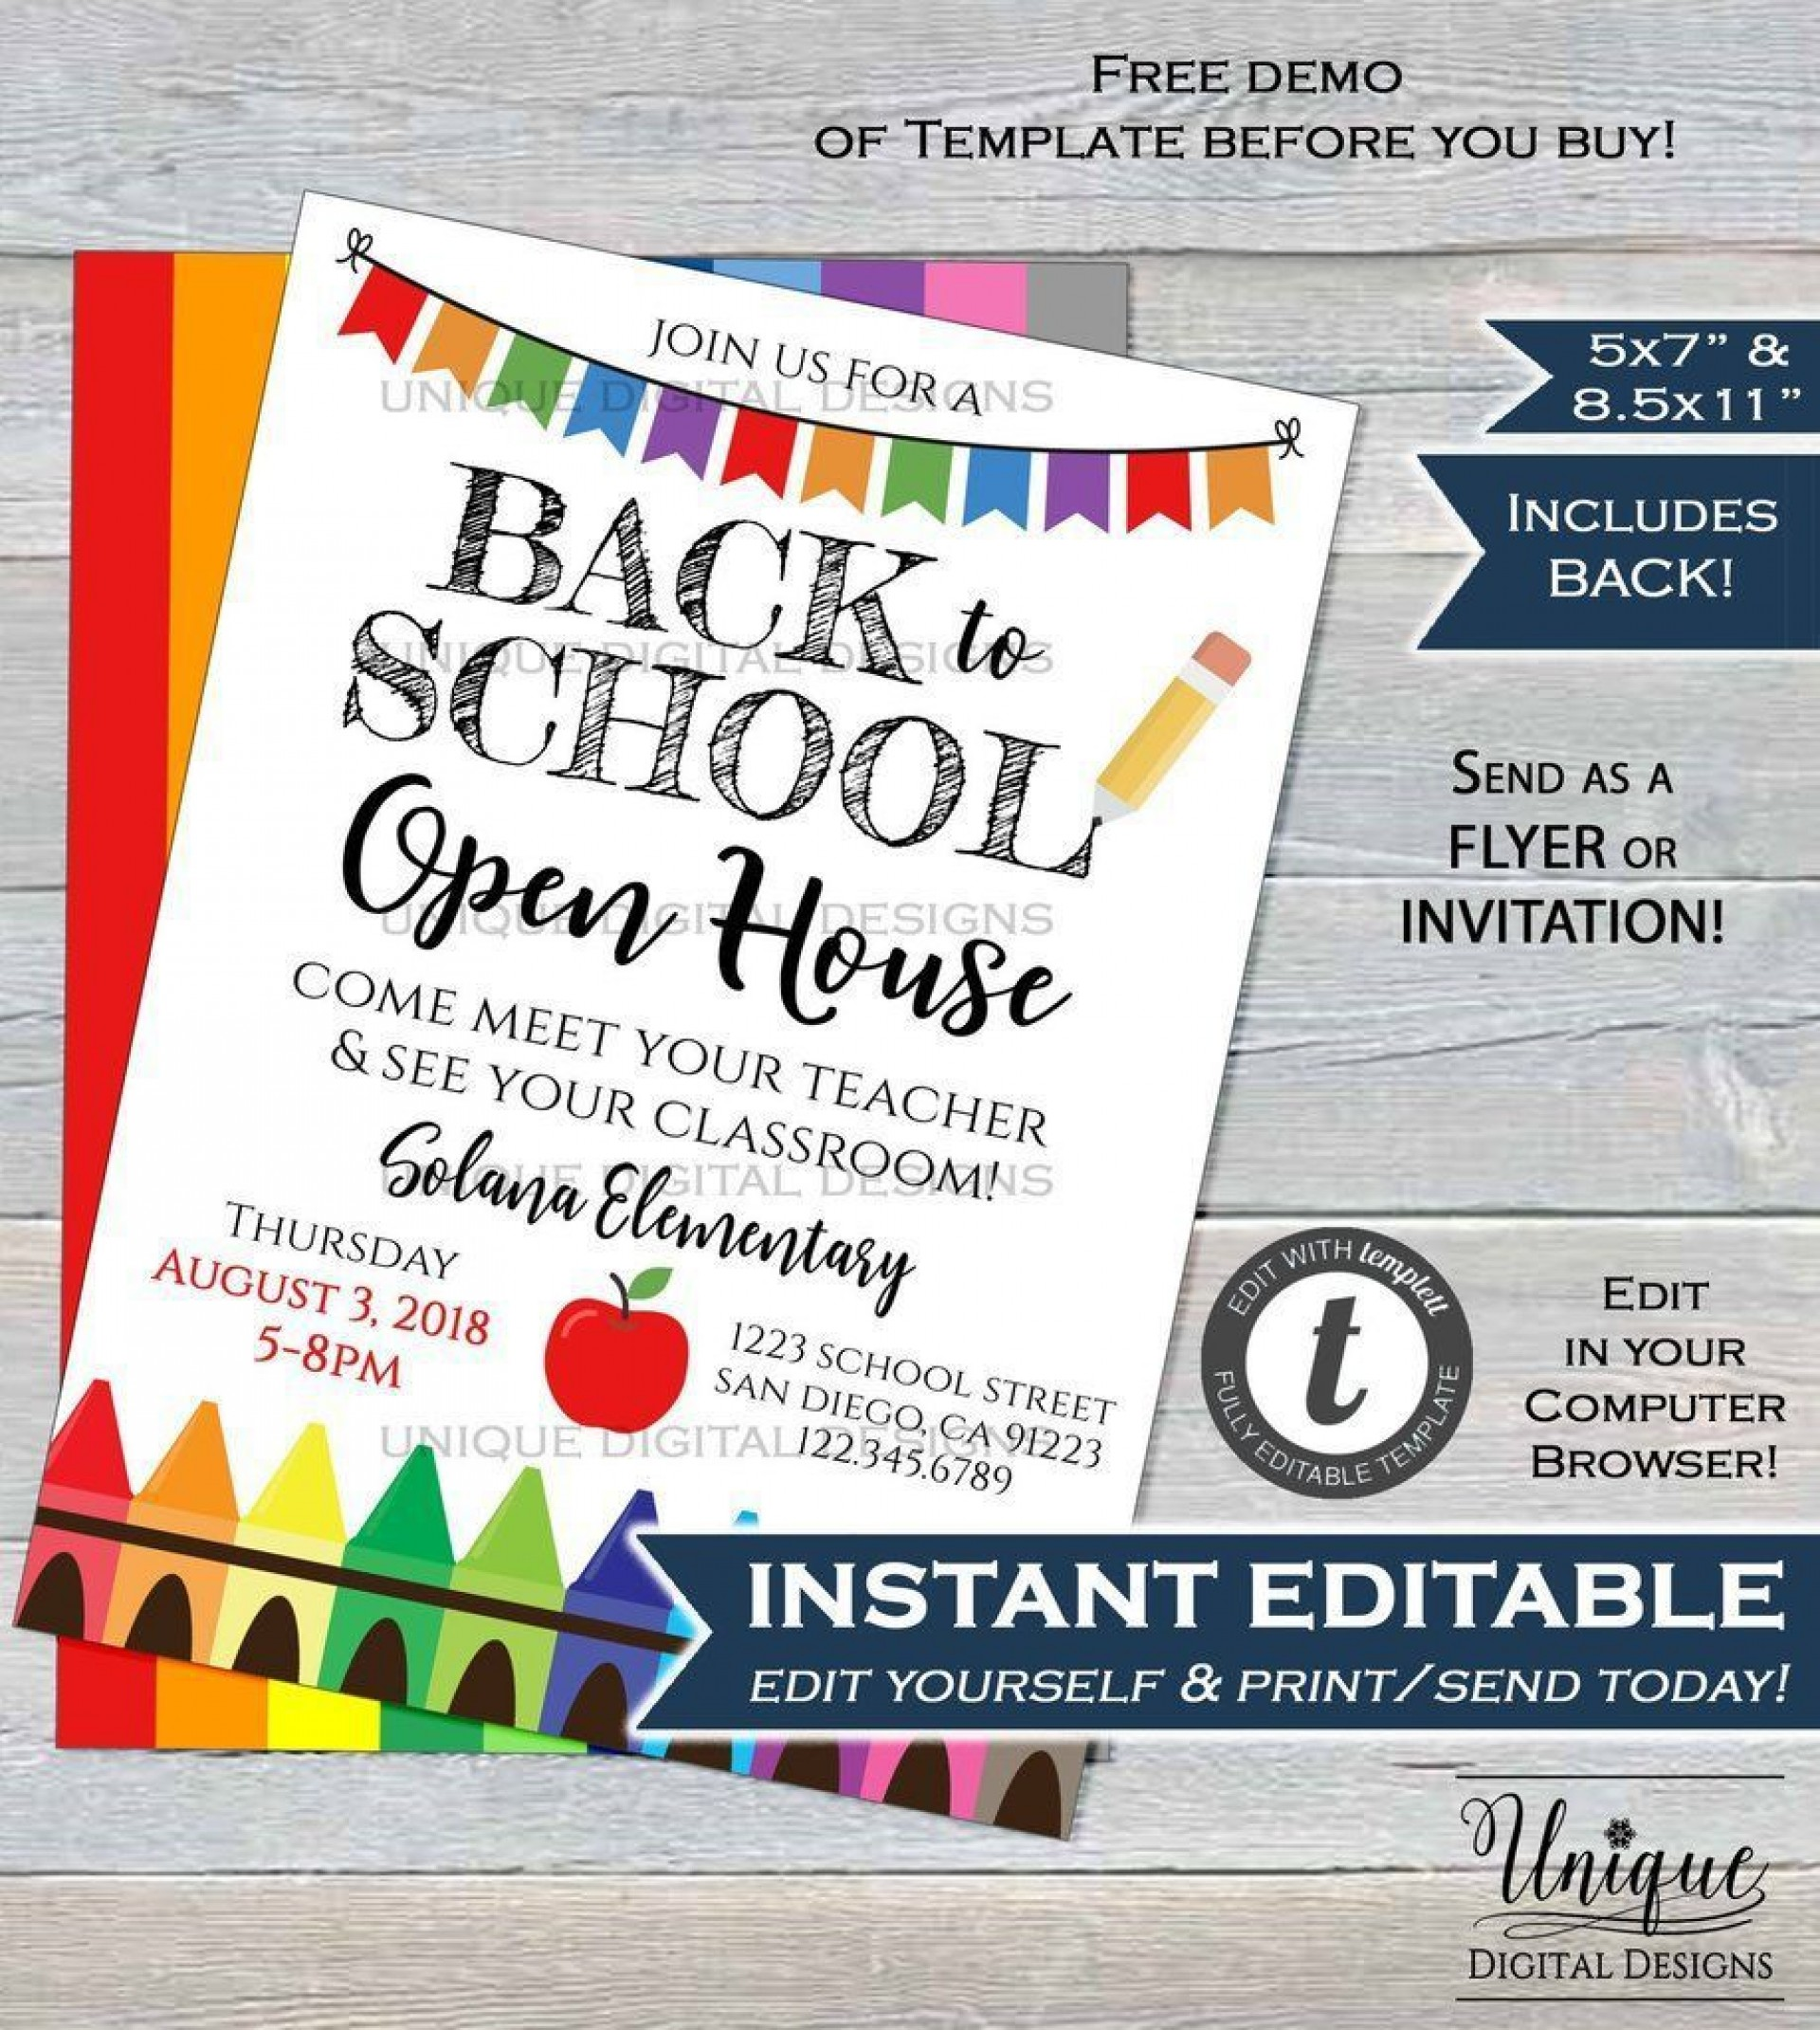 004 Astounding School Open House Flyer Template Concept  Elementary Free Word1920